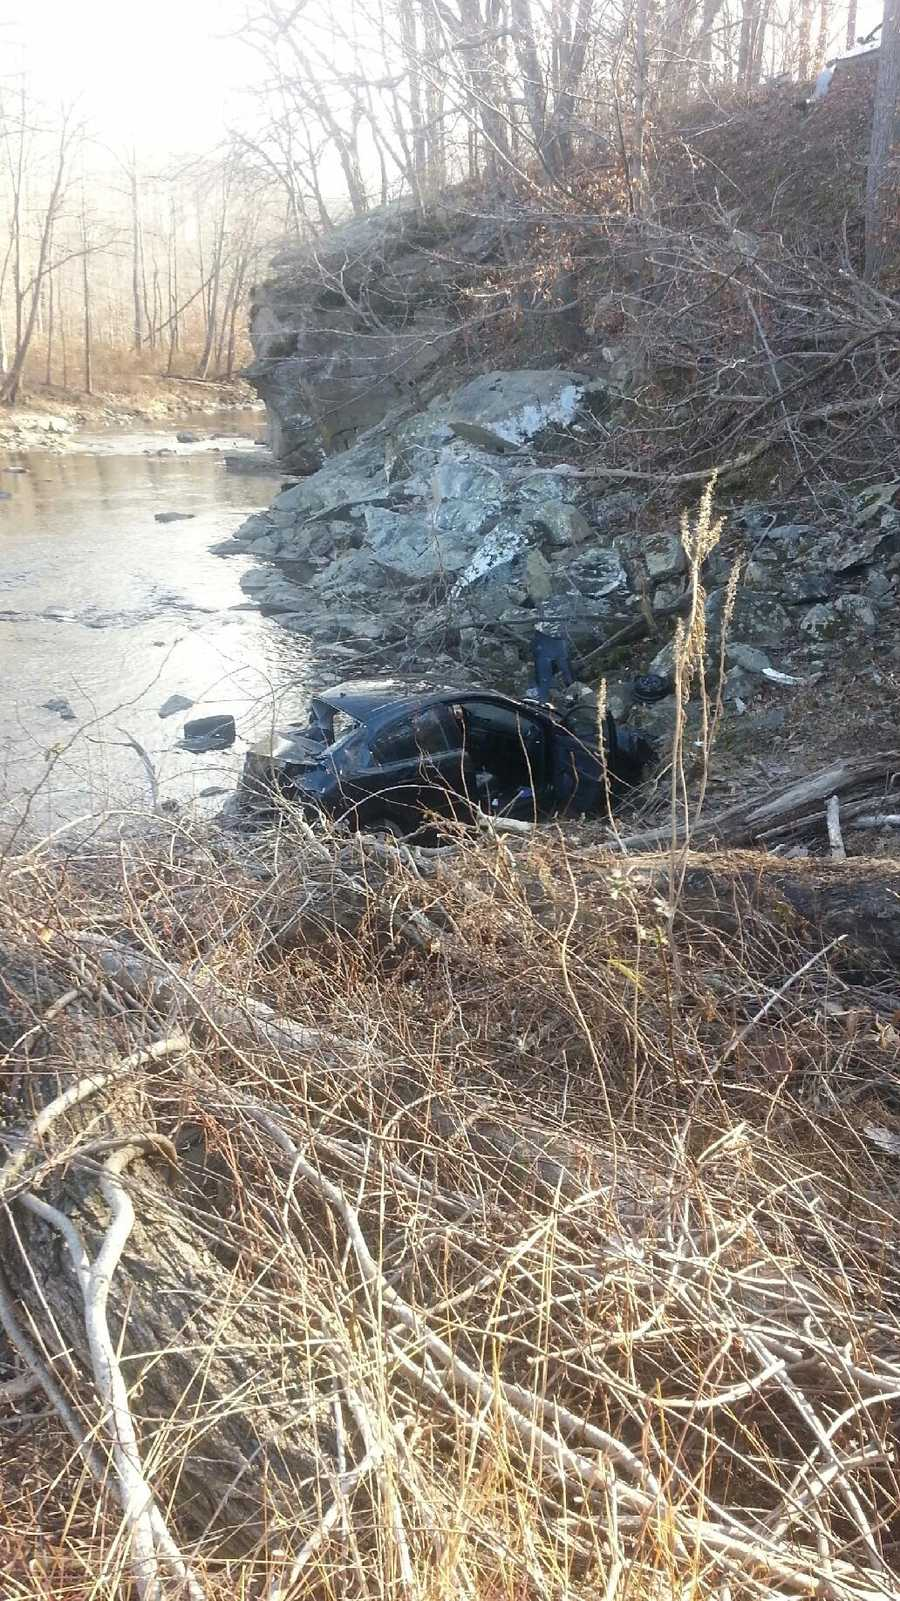 Fire crews in Harford County had to pull a man from his car after it went over an embankment and landed on its roof in a ravine. See how rescuers got to those in need.